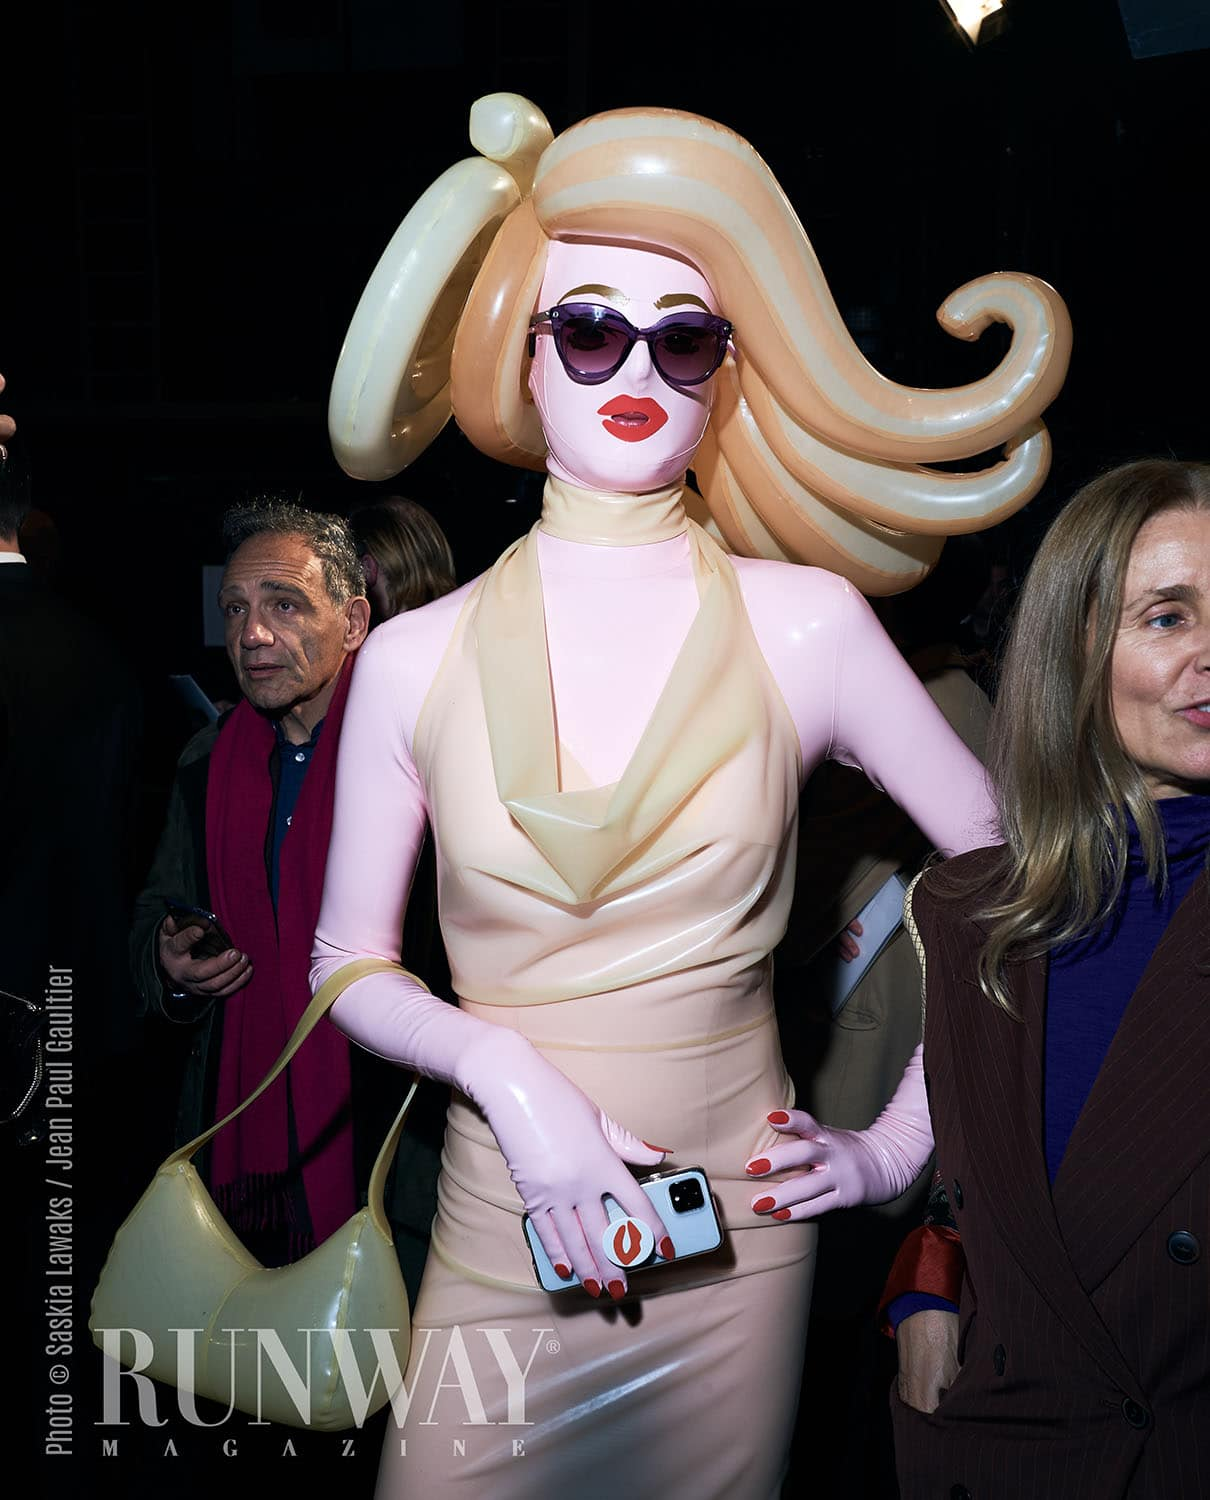 RUNWAY MAGAZINE EXCLUSIVE: AFTER SHOW PARTY - JEAN PAUL GAULTIER